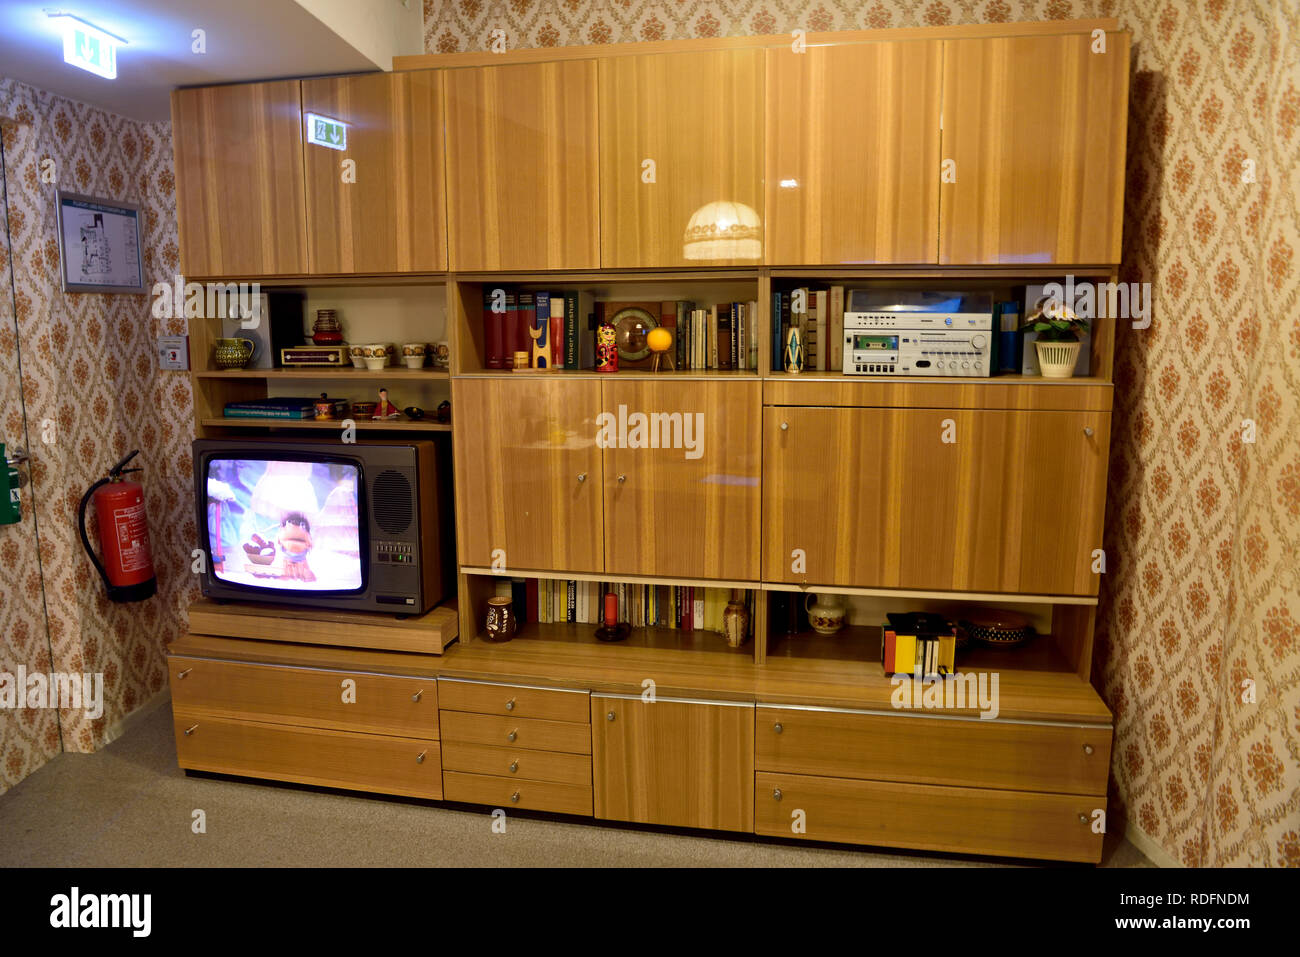 Berlin, Germany - November 10, 2018. Typical Soviet-style cupboard on display at DDR Museum in Berlin, with book, TV and souvenirs. - Stock Image